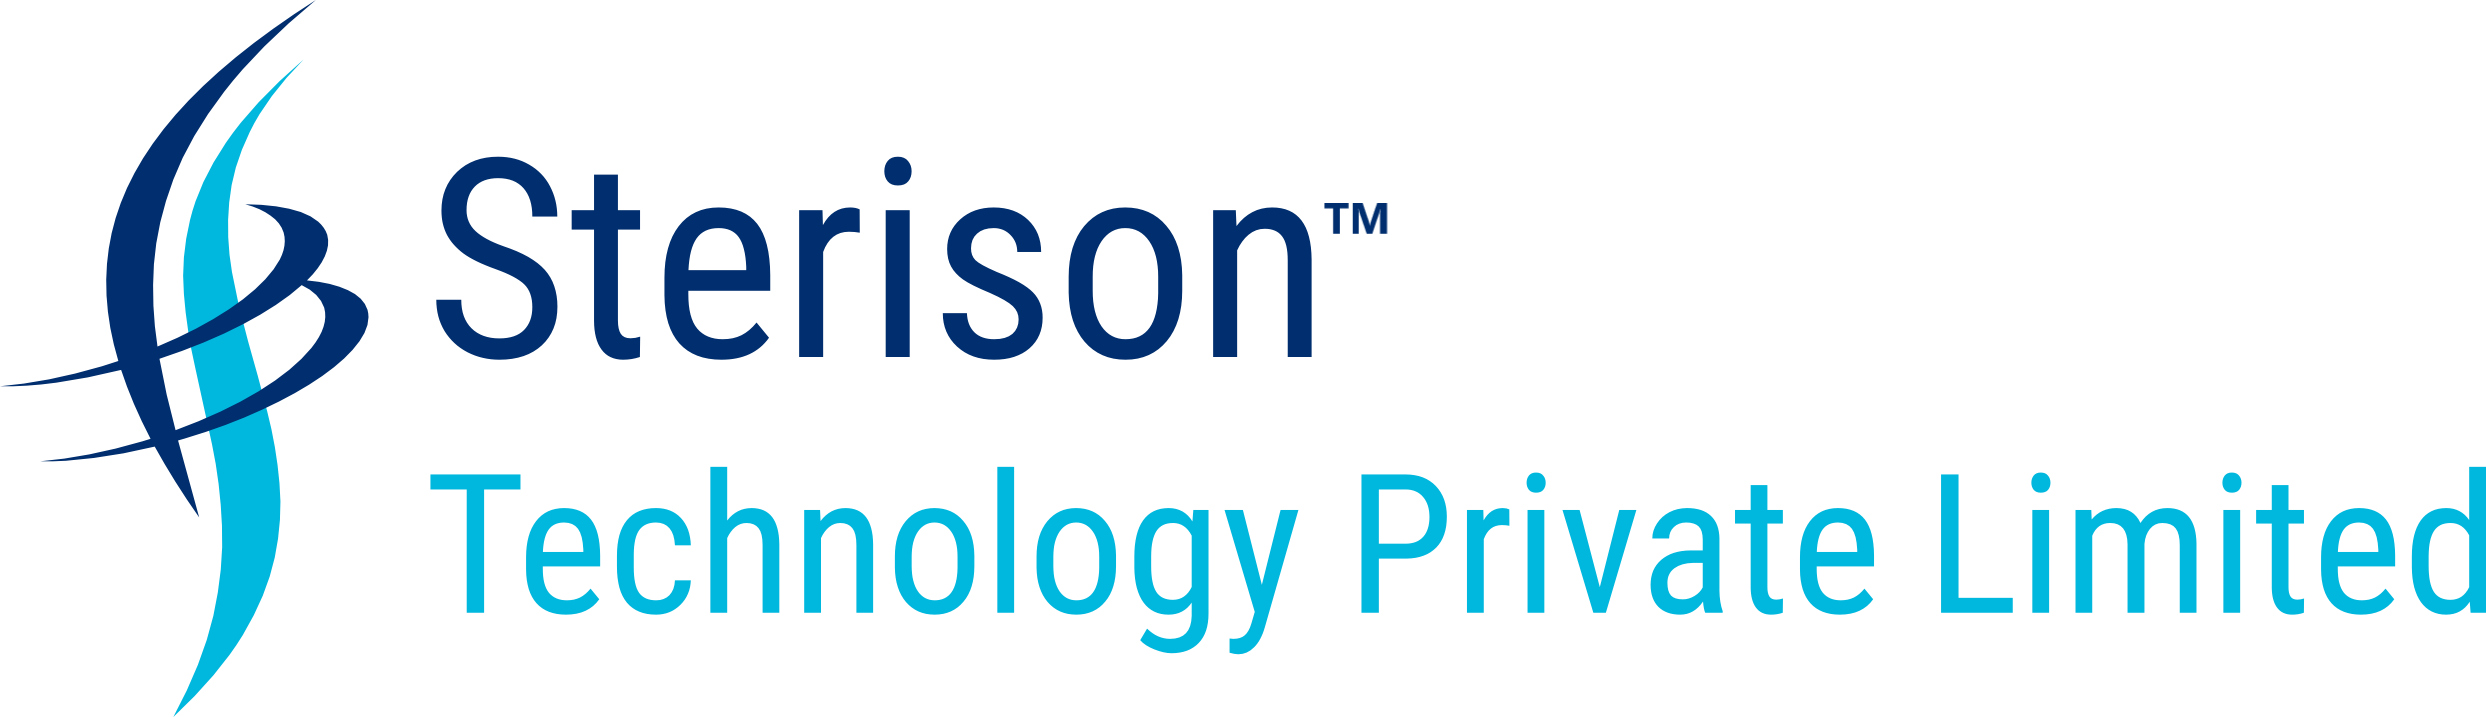 Sterison Technology Private Limited